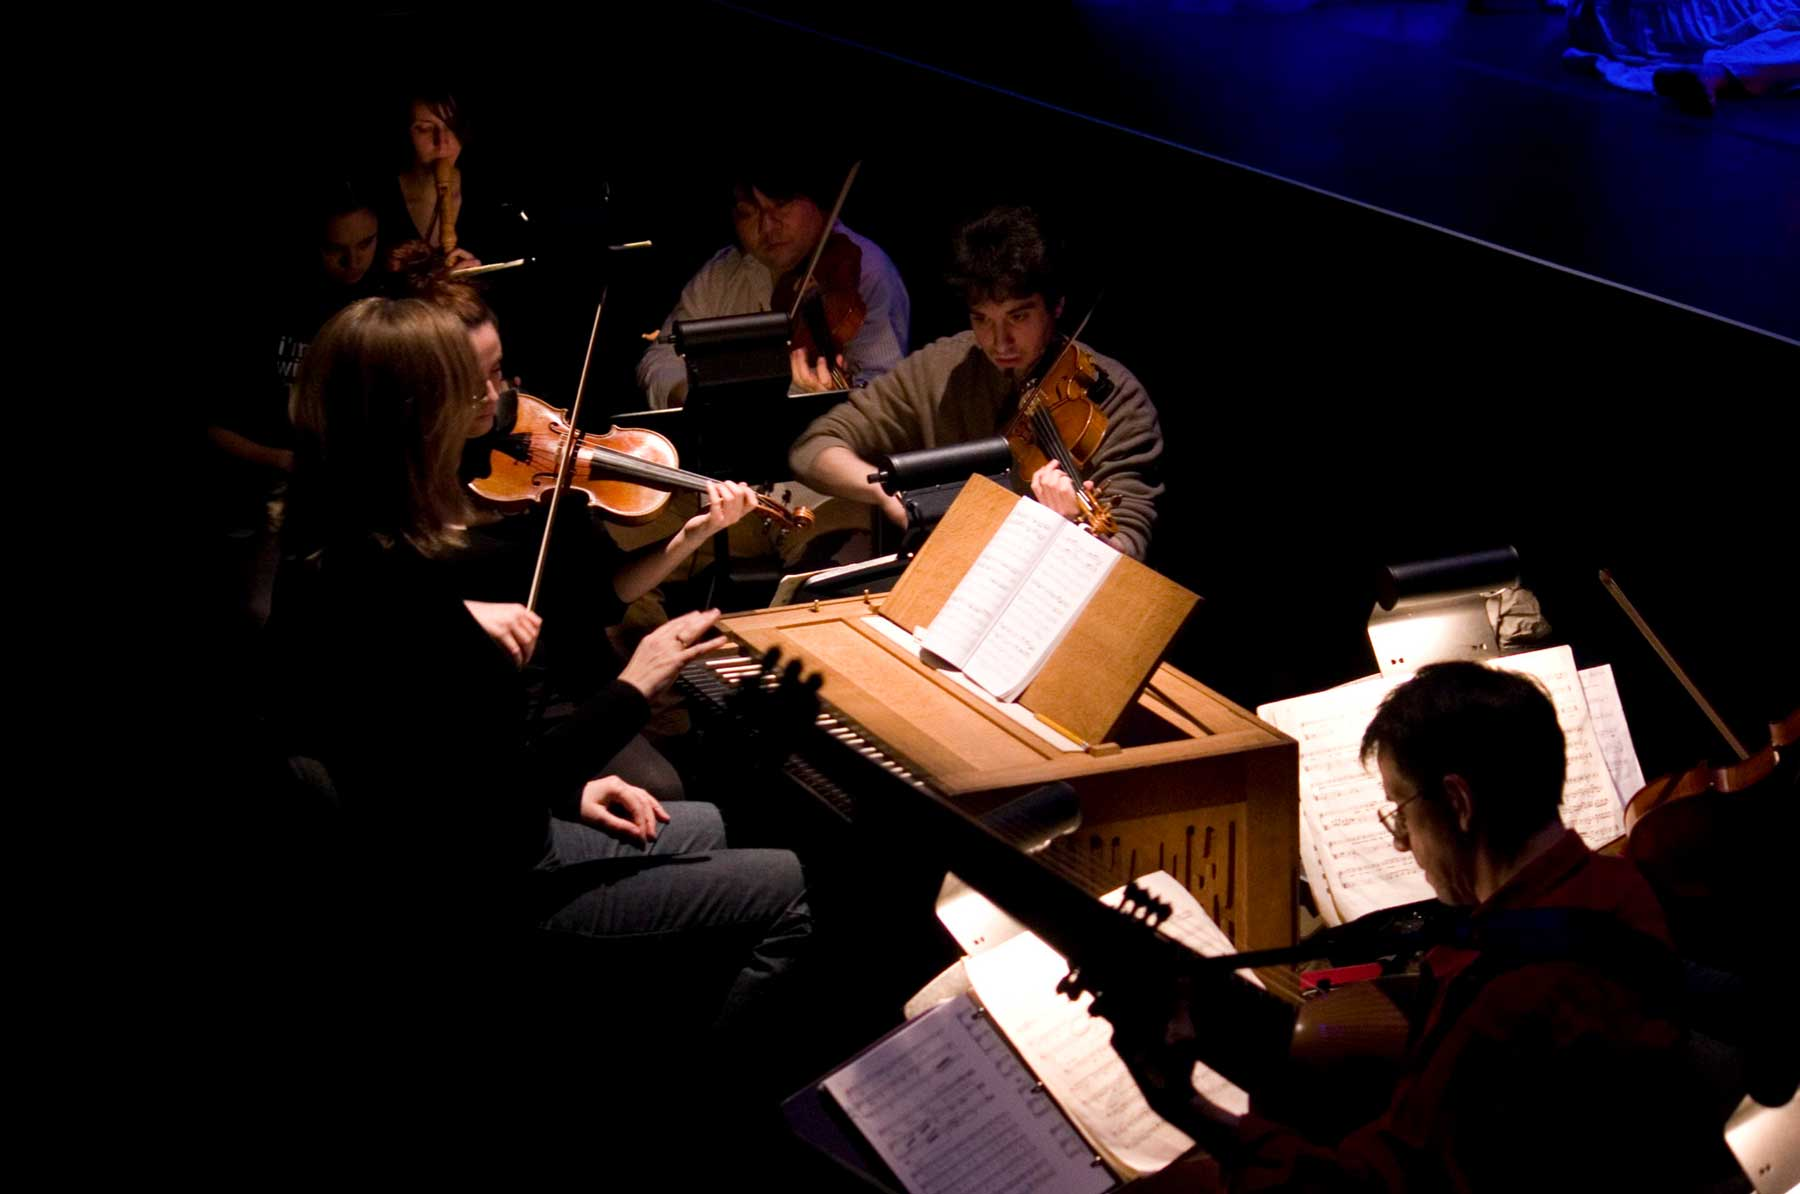 Students performing in orchestra pit